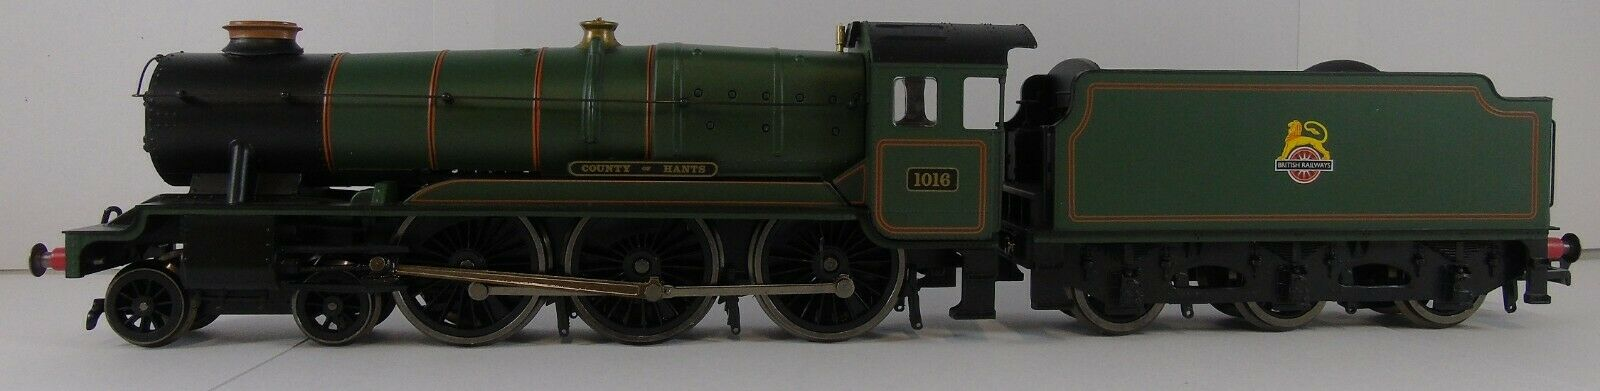 HORNBY R3279 COUNTY classe 16